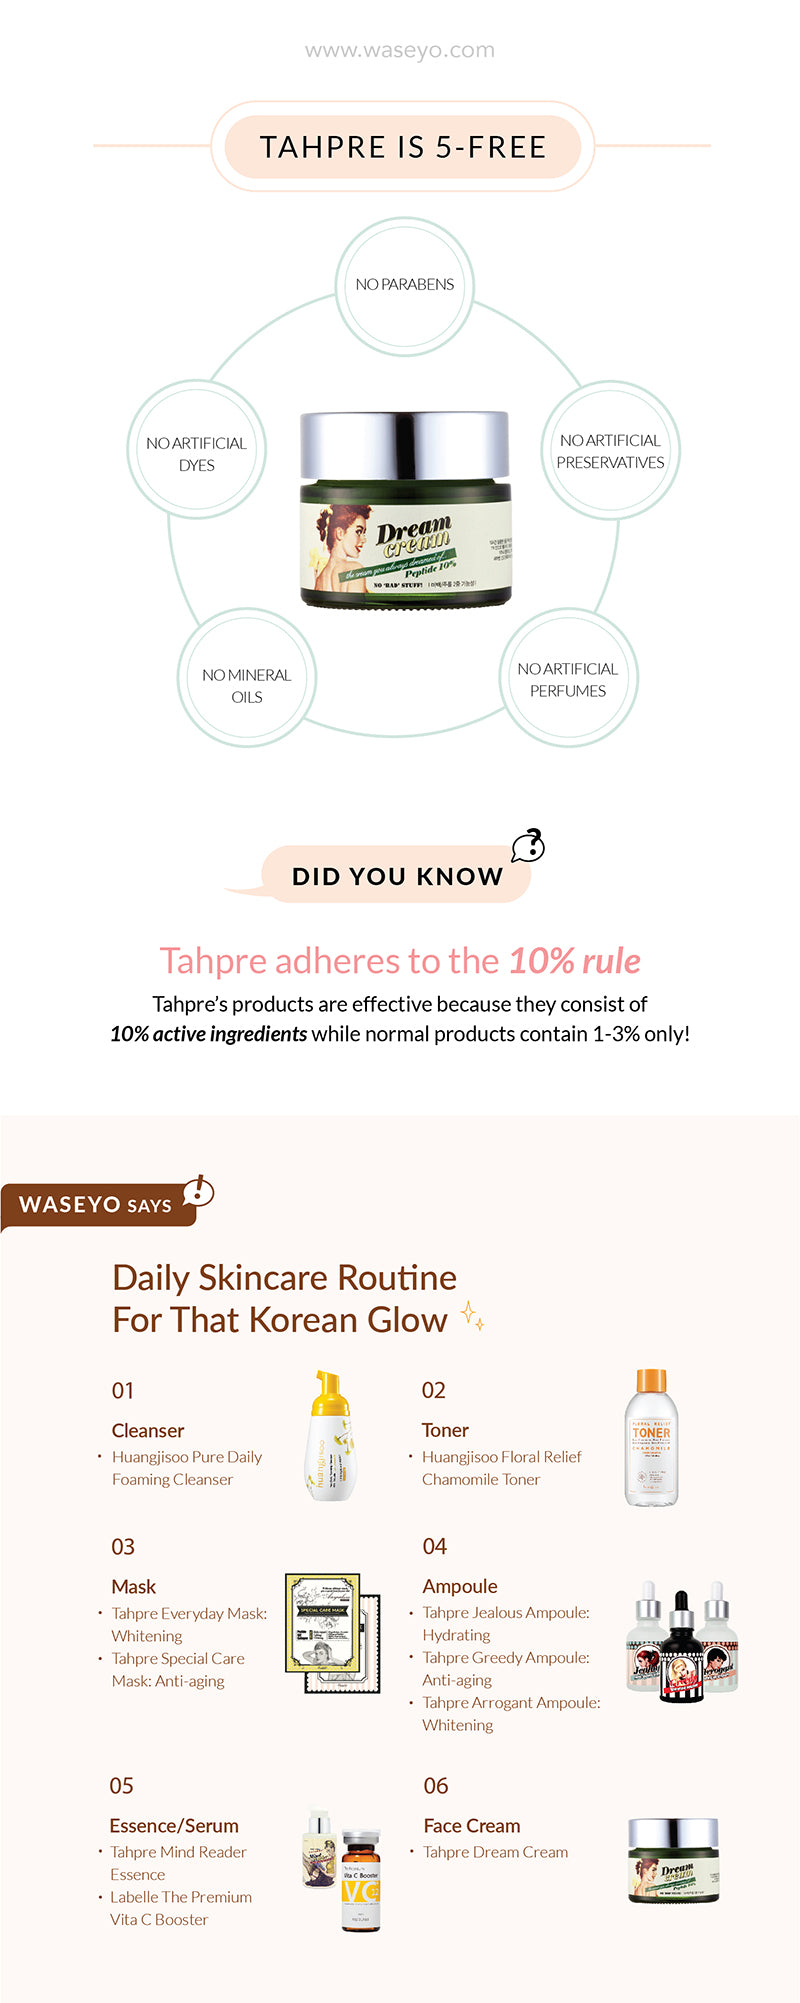 Tahpre is 5 FREE, no parabens, no artificial dye, no artificial preservatives, no artificial perfume, no mineral oil. Also contains minimum 10% active ingredients to make product effective. Daily skincare routine for Korean glow.